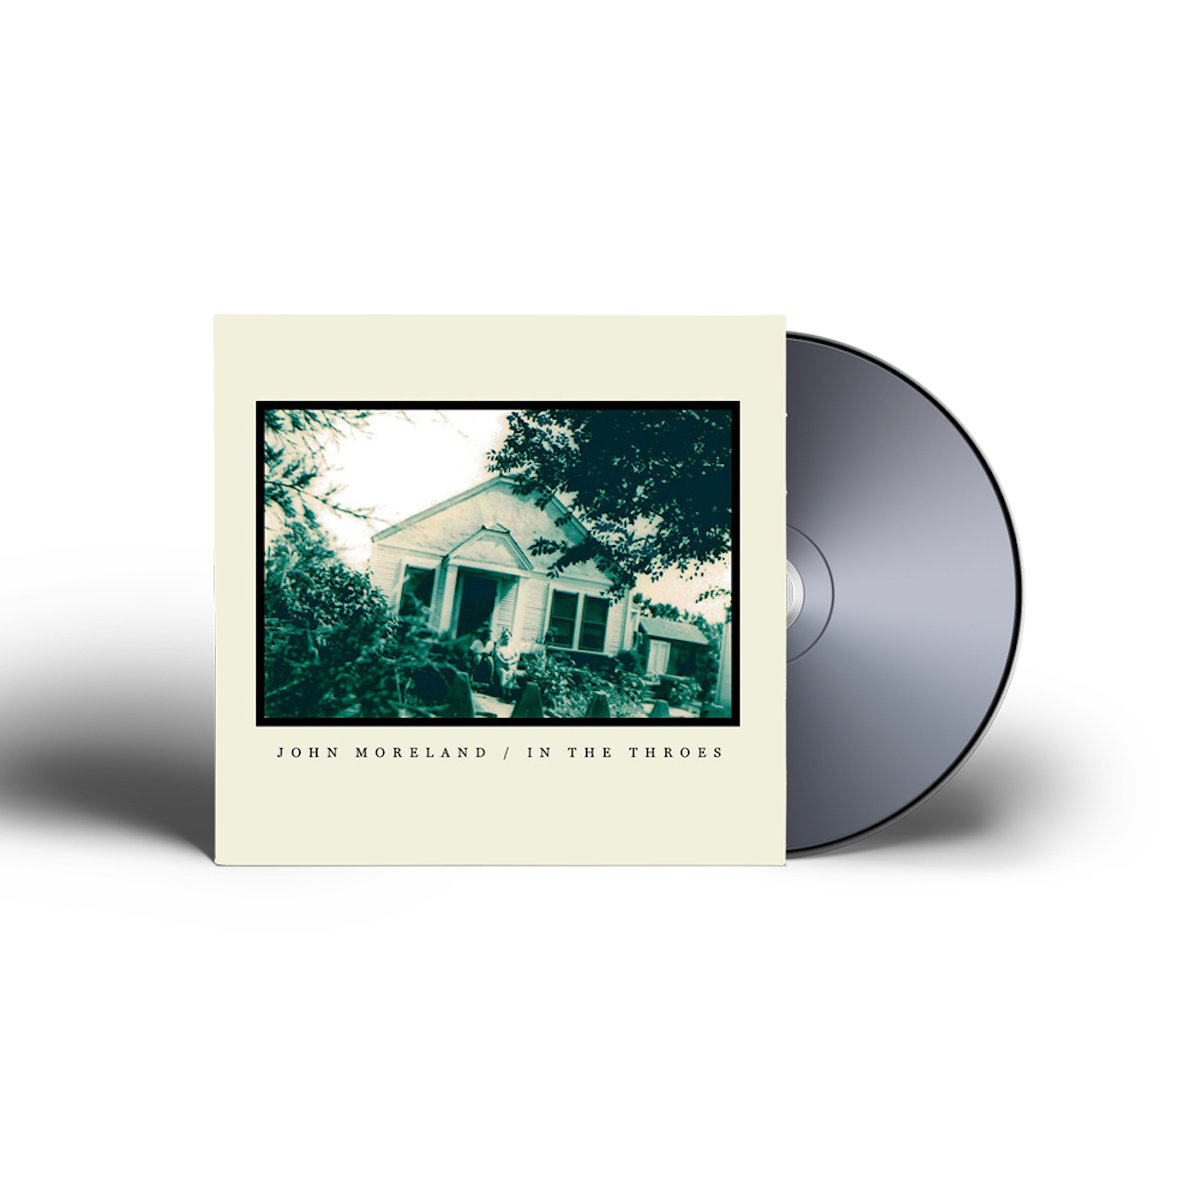 Nobody Gives A Damn About Songs Anymore John Moreland I wait for night time to come to bring you to me i can't believe i'm the one i was so lonely i feel like no one could feel i must. nobody gives a damn about songs anymore